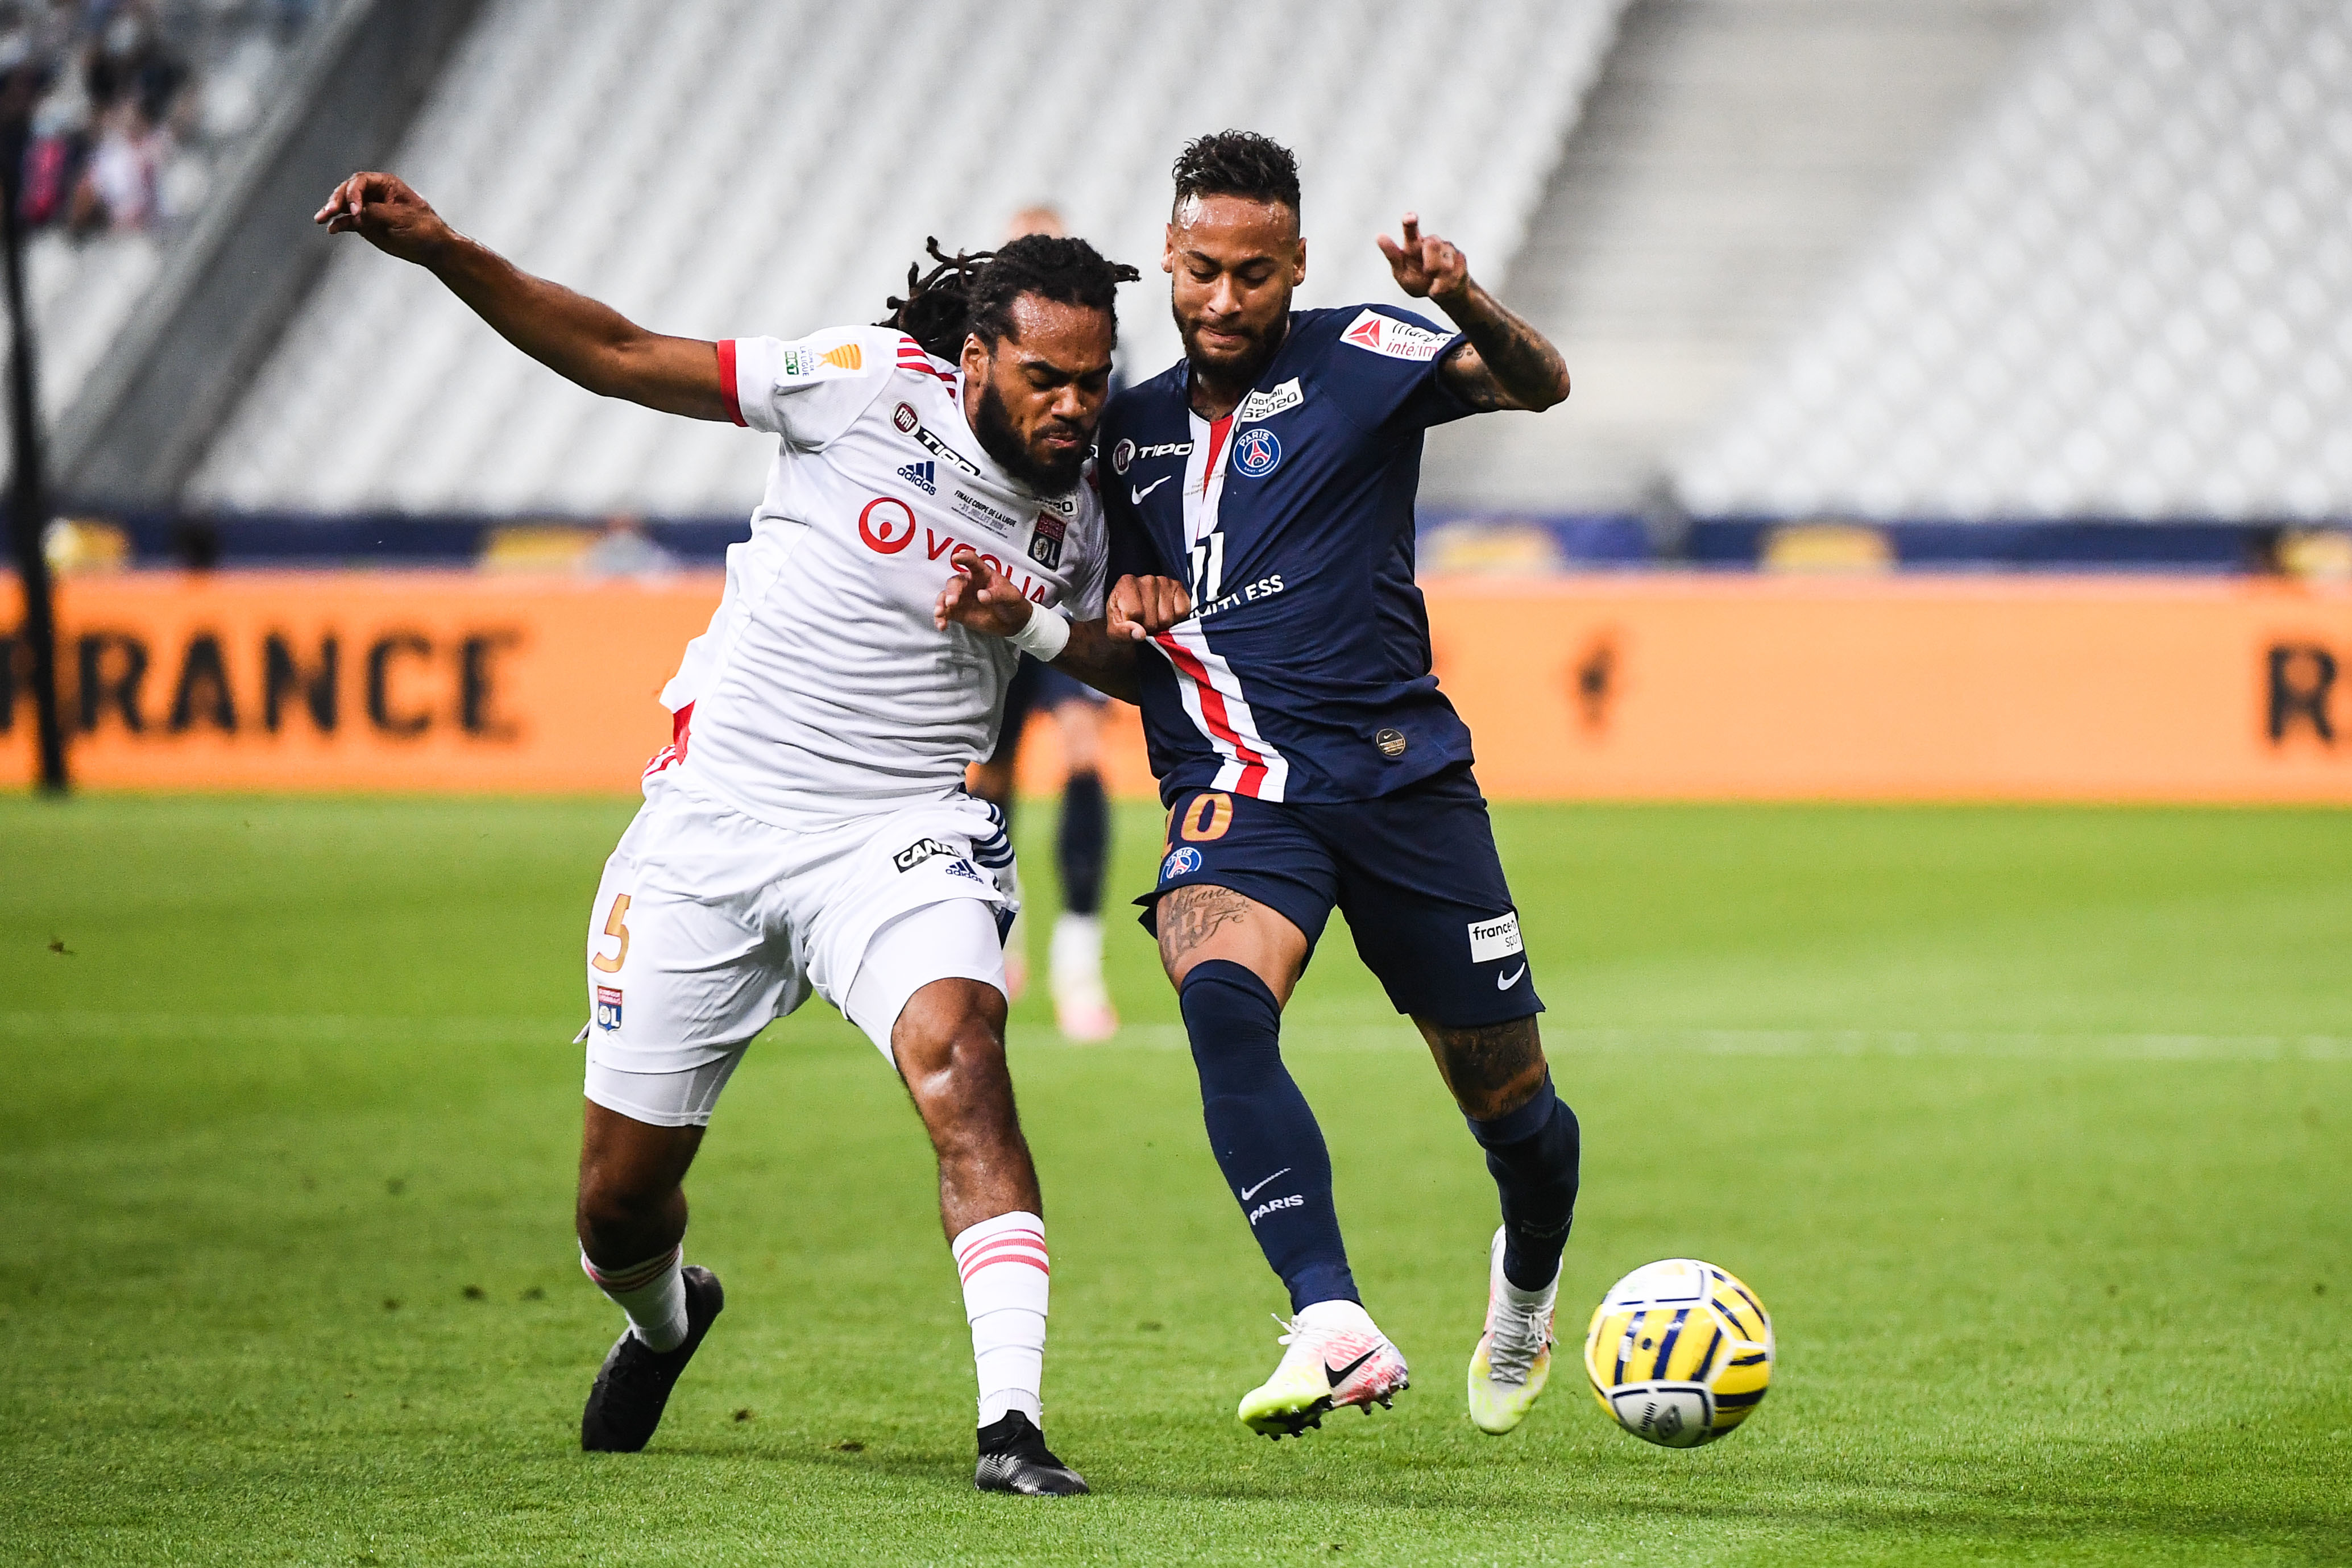 PSG - Lyon en Ligue des Champions, NEYMAR JR Jason DENAYER - https://www.foot-sur7.fr/